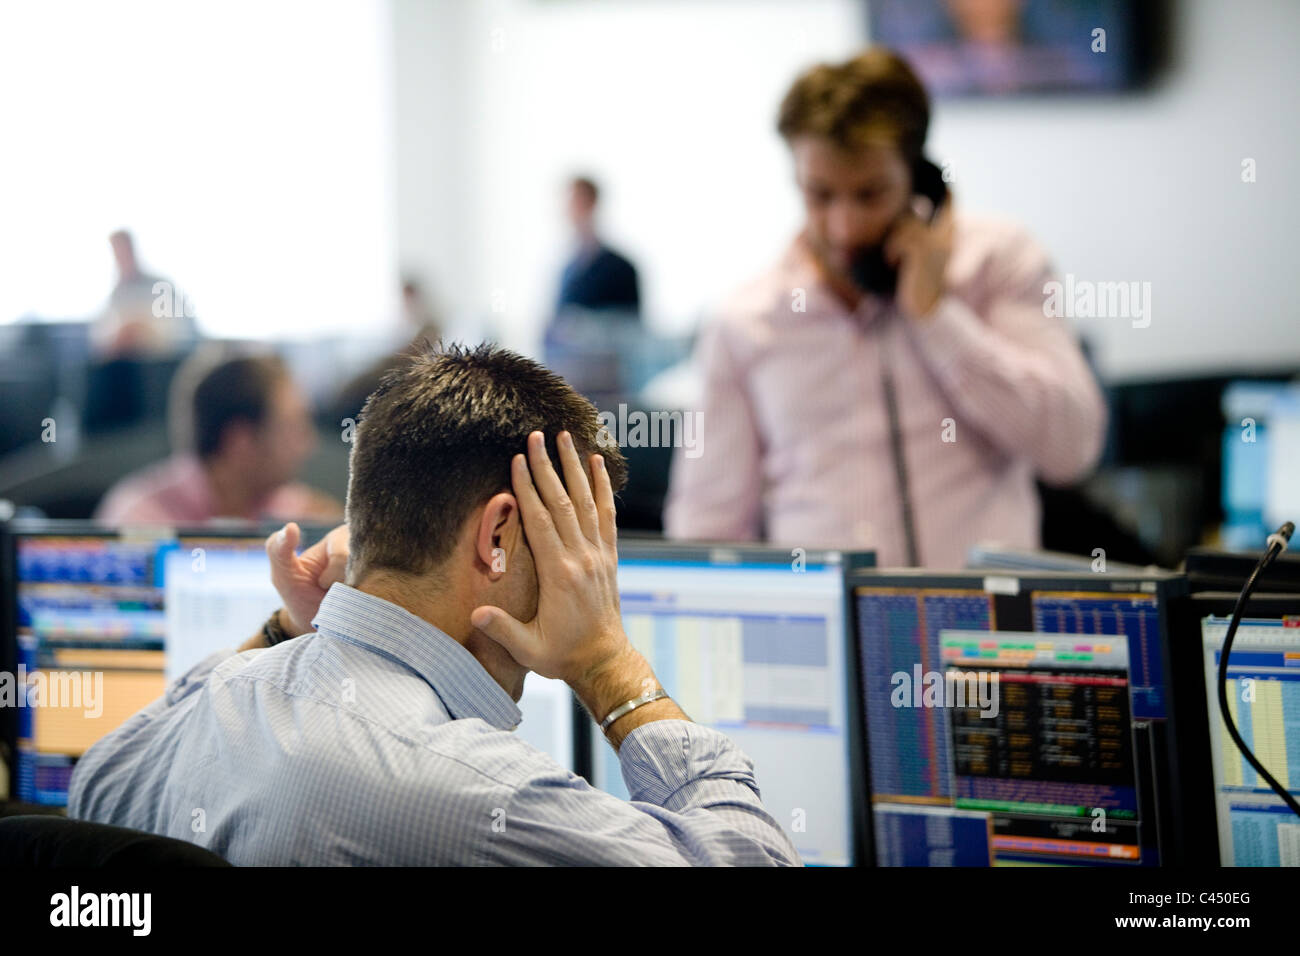 BGC Voice + Electronic Brokerage company trading floor, traders compete on stocks and shares prices in the financial - Stock Image